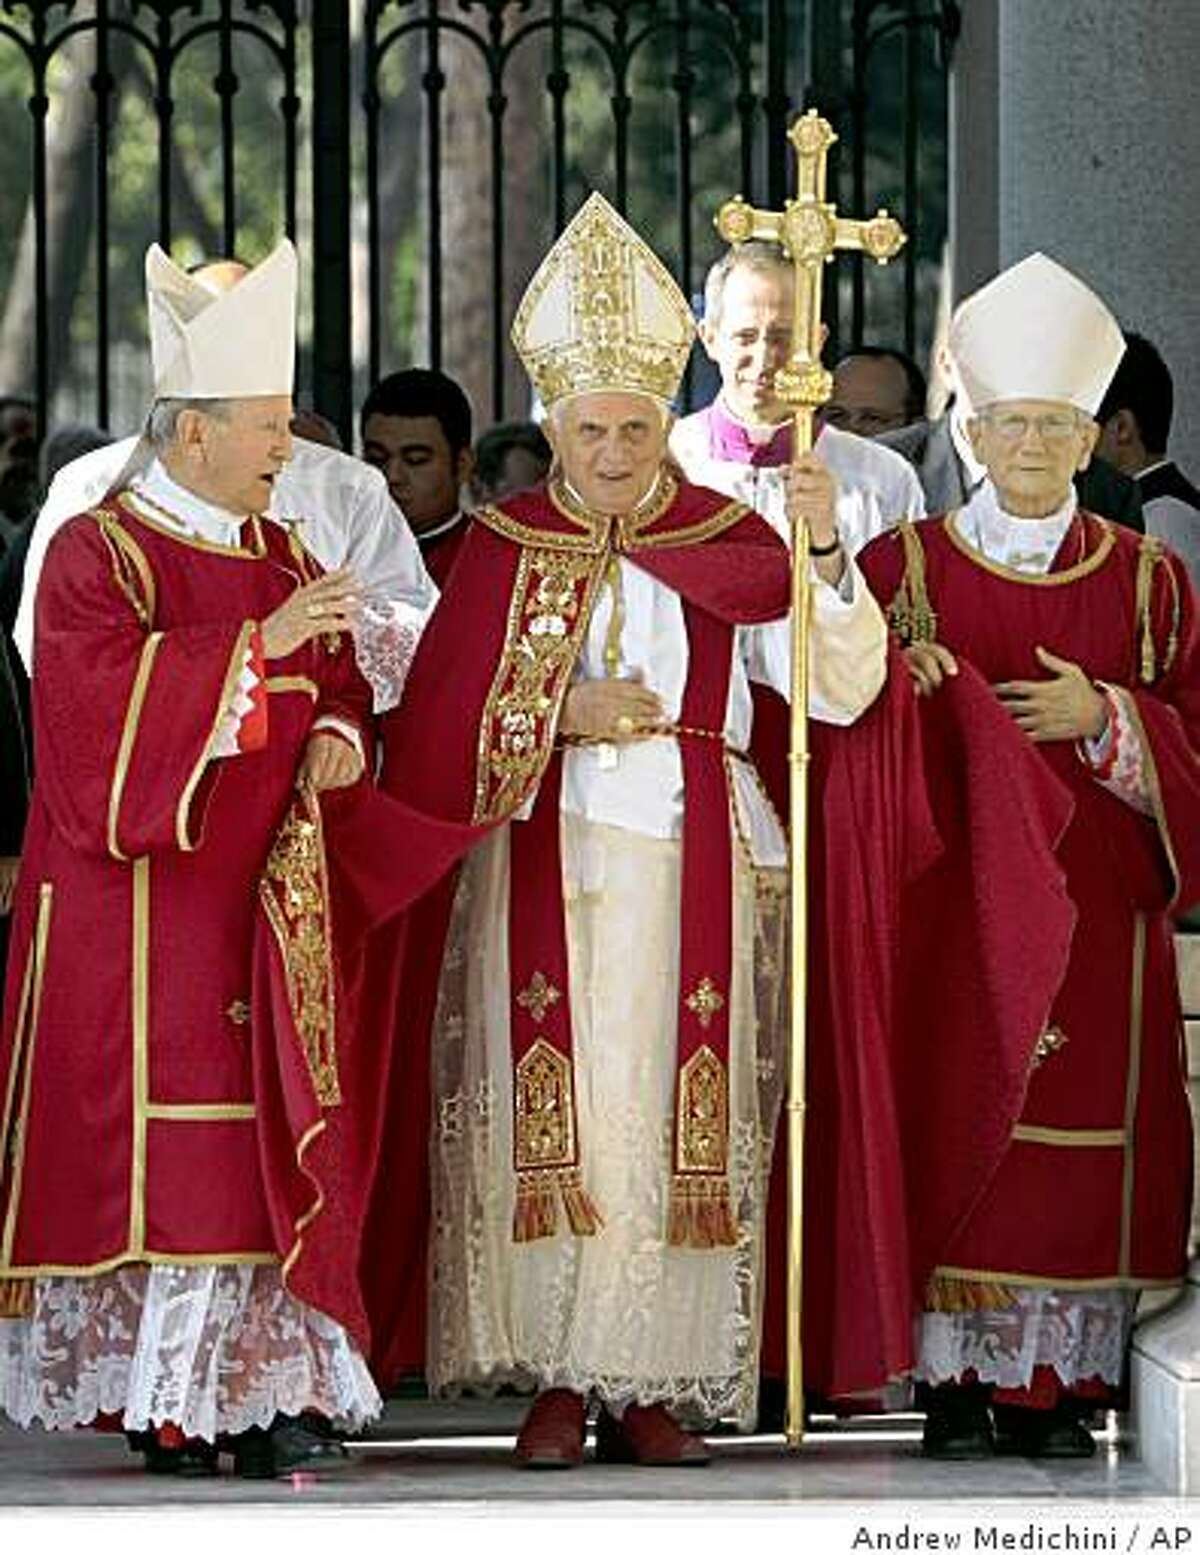 Pope Benedict XVI, at center, arrives with other prelates for a solemn vespers service for St. Peter and St. Paul, in St. Paul Outside the Walls Basilica, in Rome, Sunday, June 28, 2009. The pontiff said recent scientific tests on what are believed to be the remains of the Apostle Paul